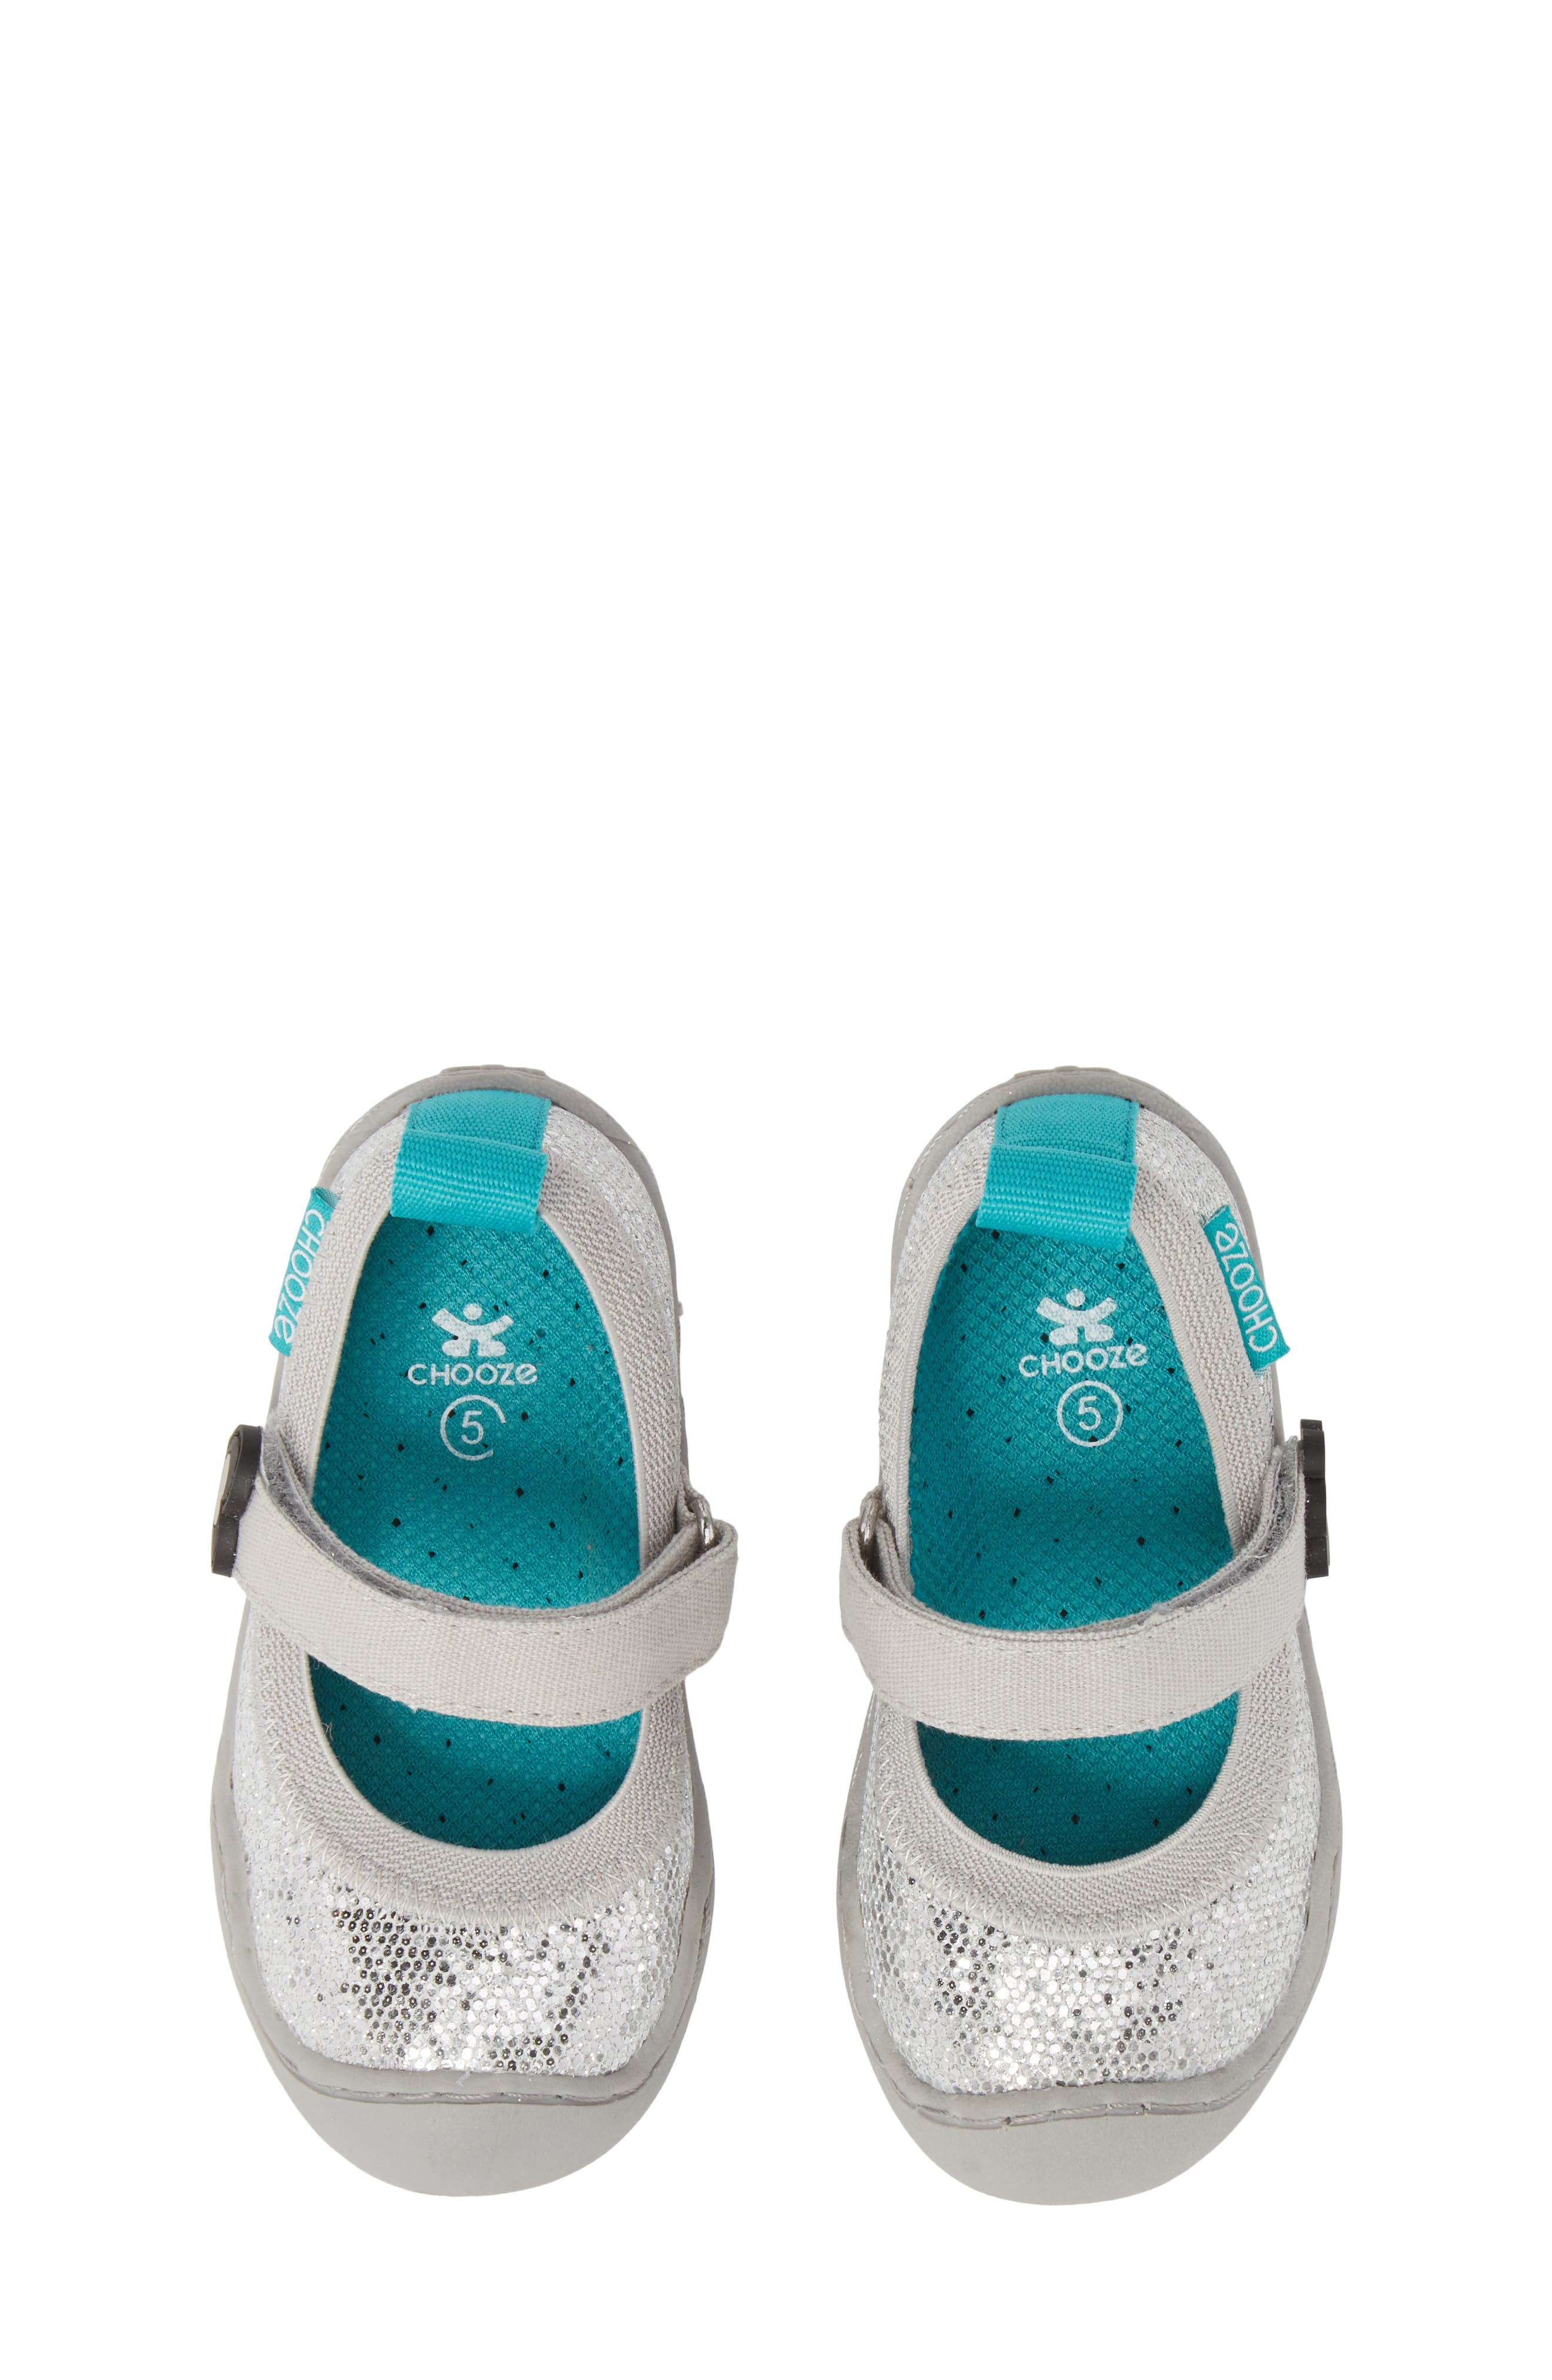 CHOOZE, Steady Shimmer Mary Jane Sneaker, Main thumbnail 1, color, GLOW PLATINUM